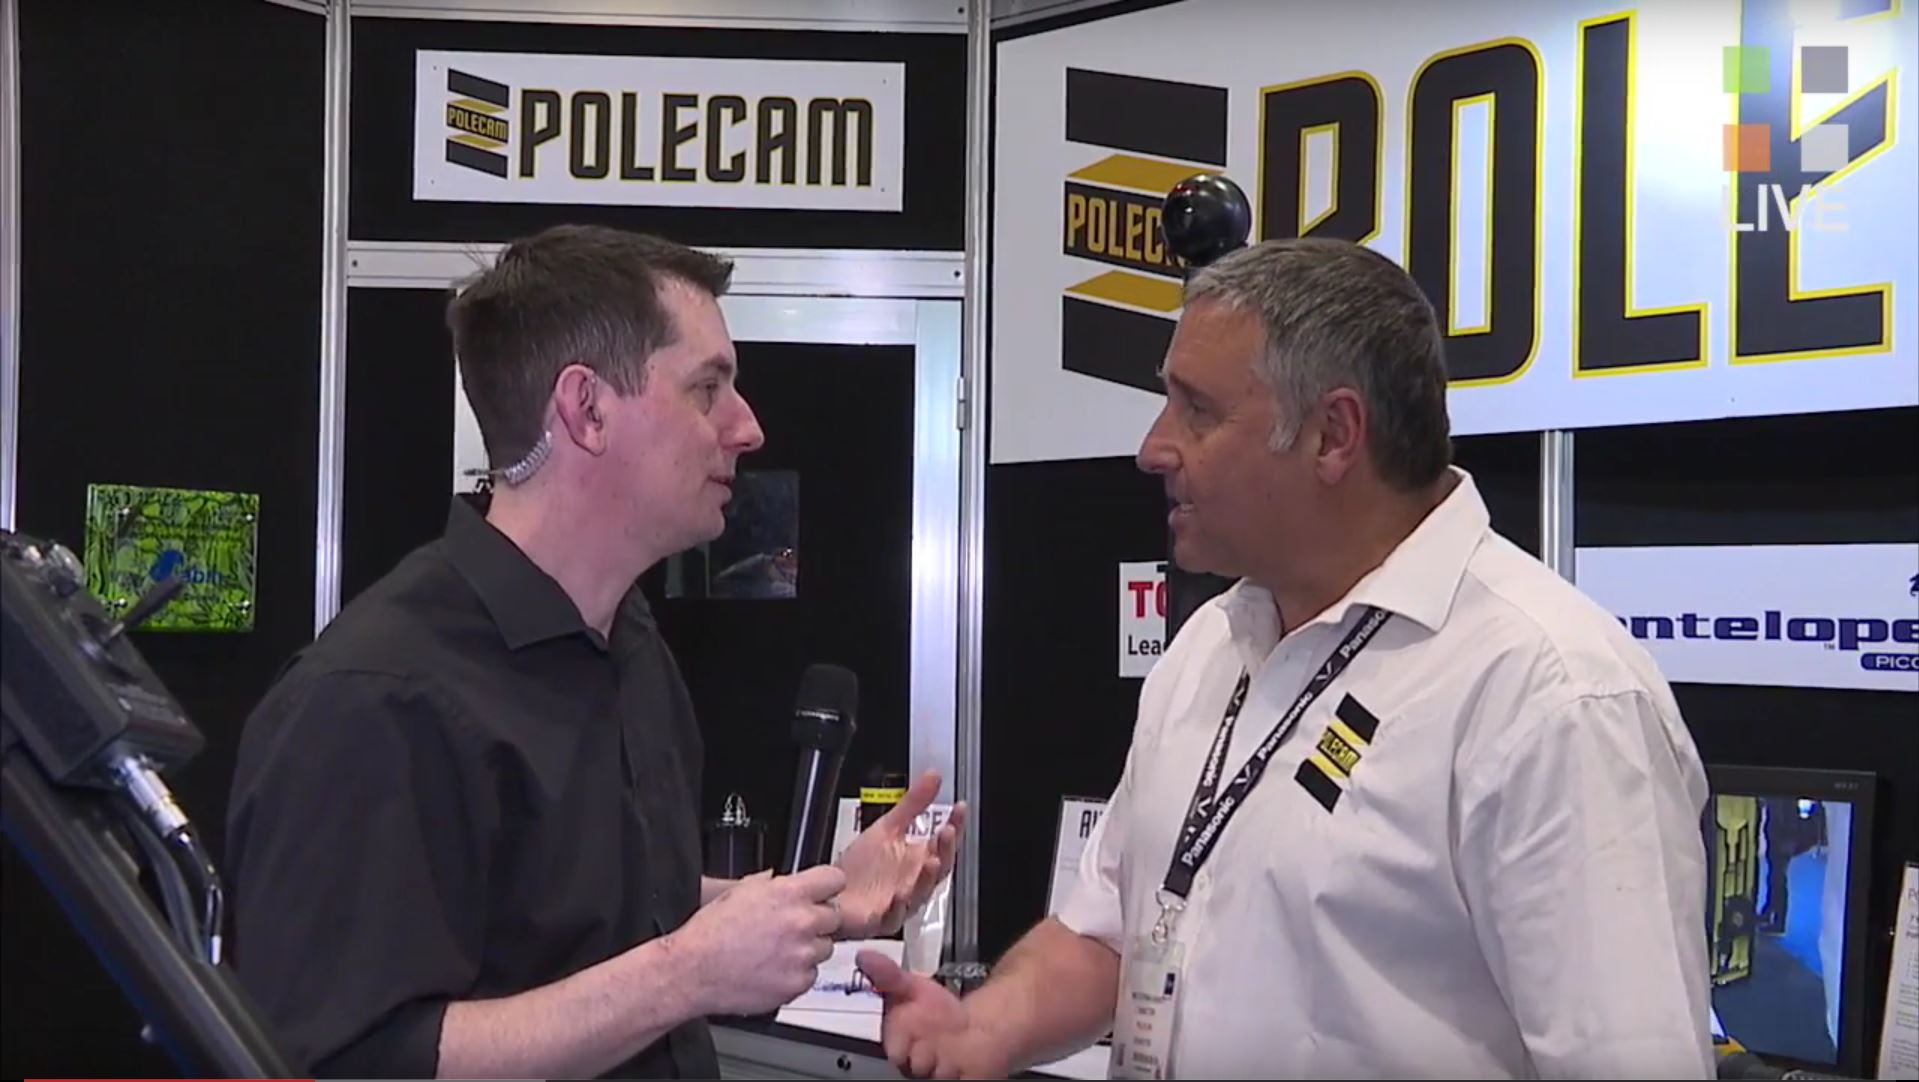 Guided Tour of the Polecam Stand at BVE 2016